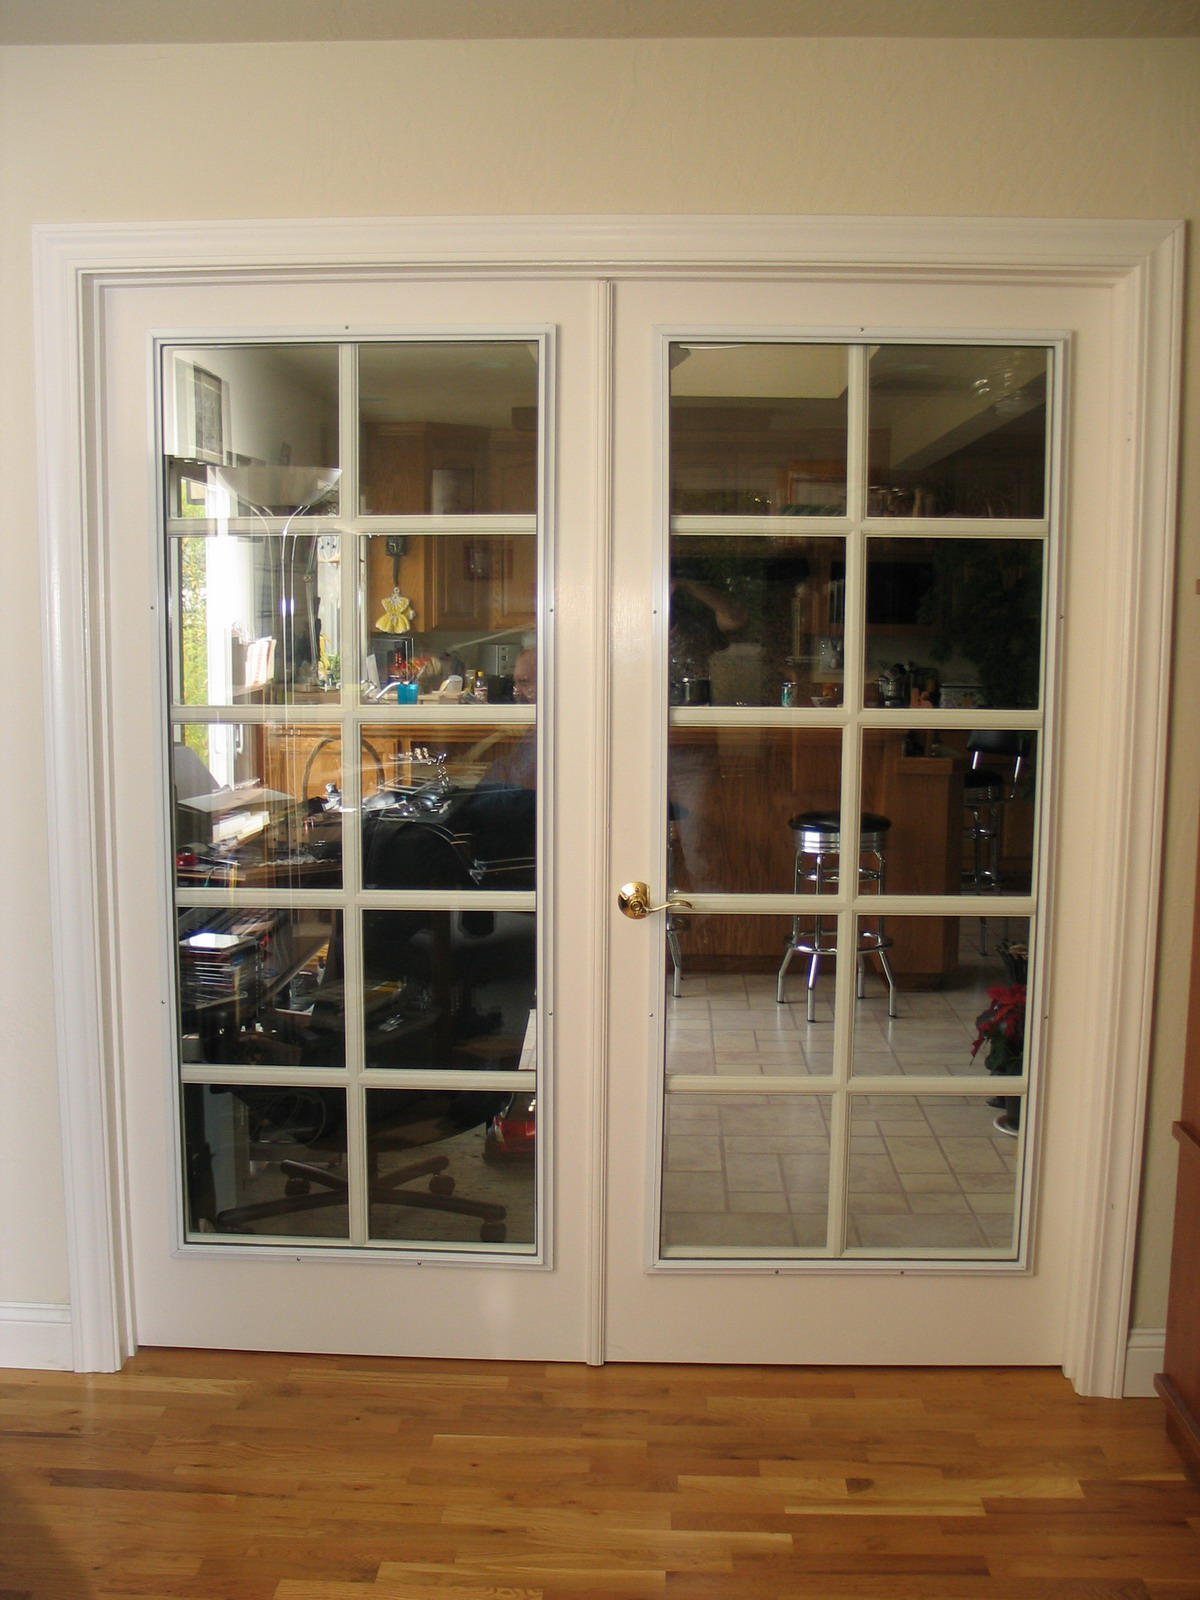 Le Meilleur Beautify Your Home With French Doors Interior 18 Inches Ce Mois Ci